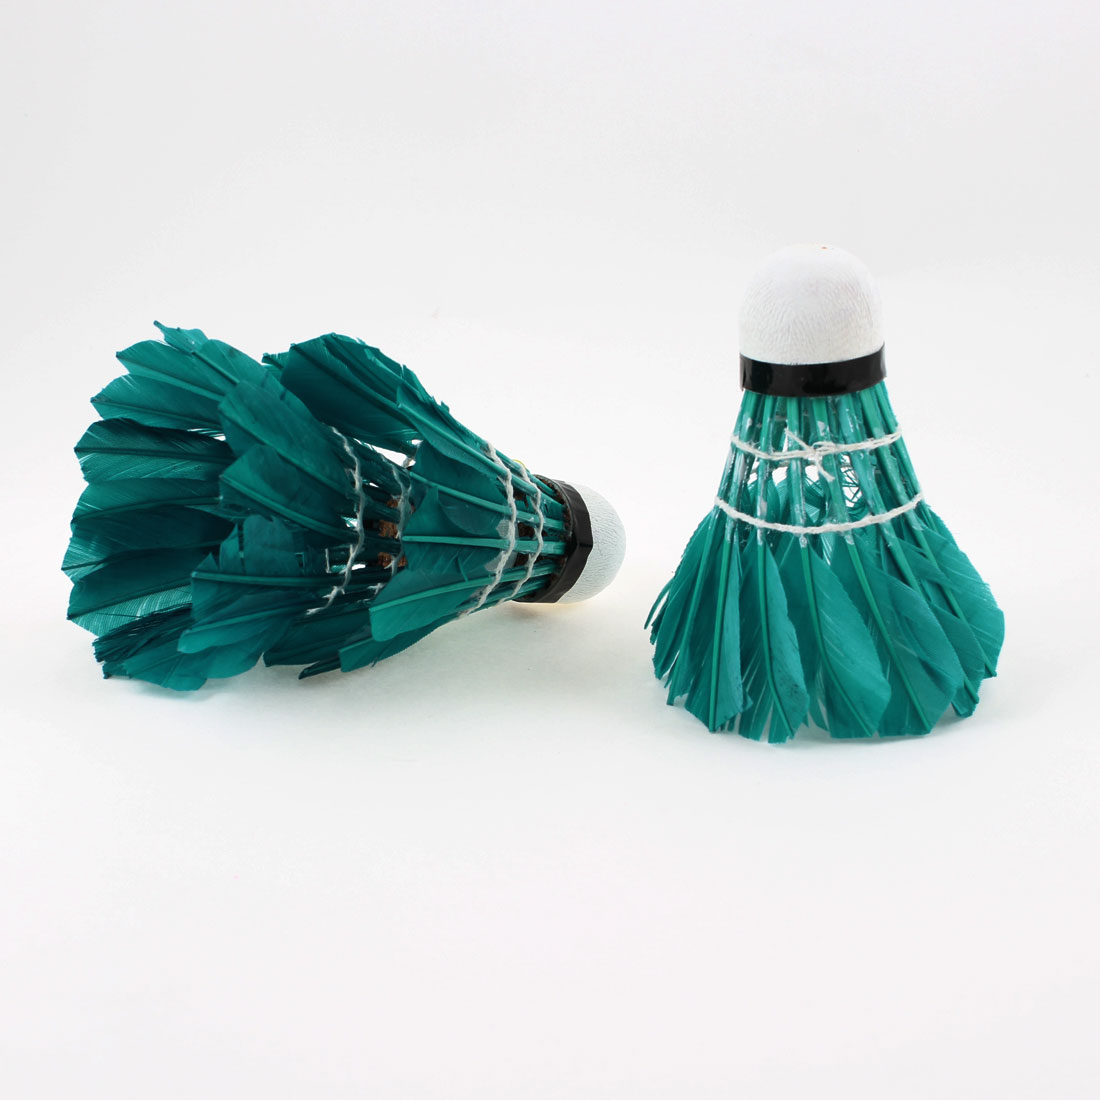 3 Pcs White Foam Bottom Teal Faux Feather Sports Badminton Shuttlecocks